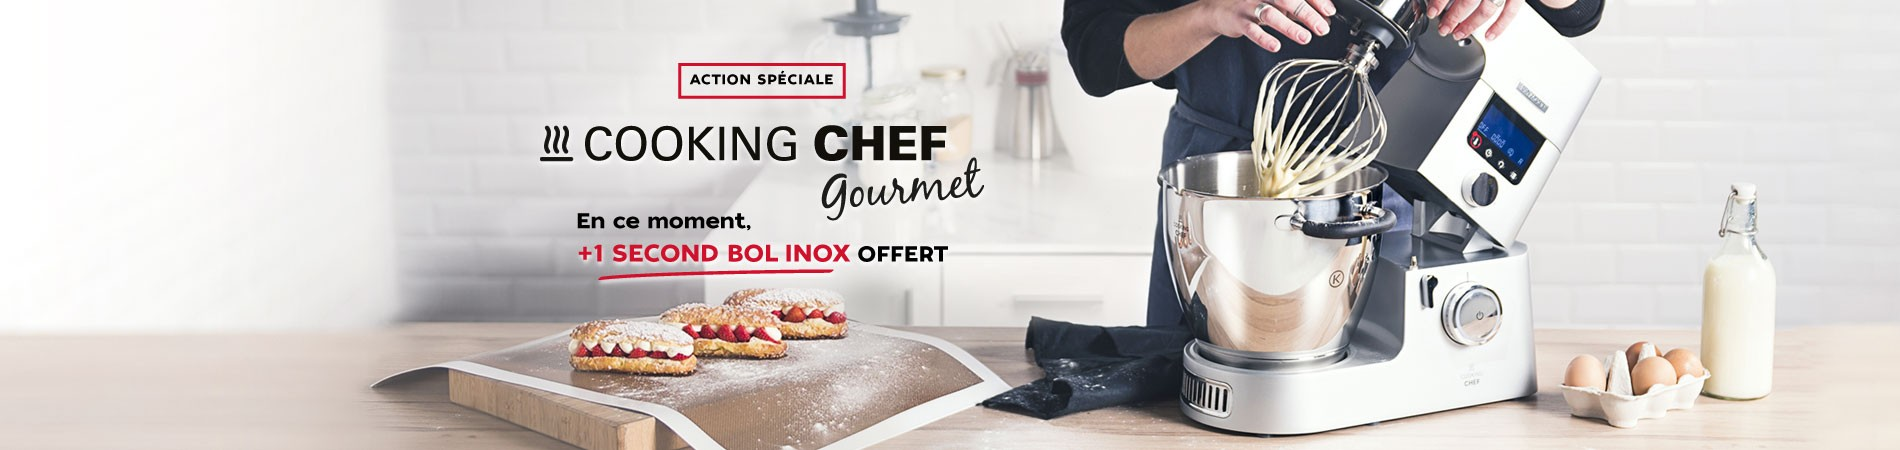 Cooking Chef Gourmet